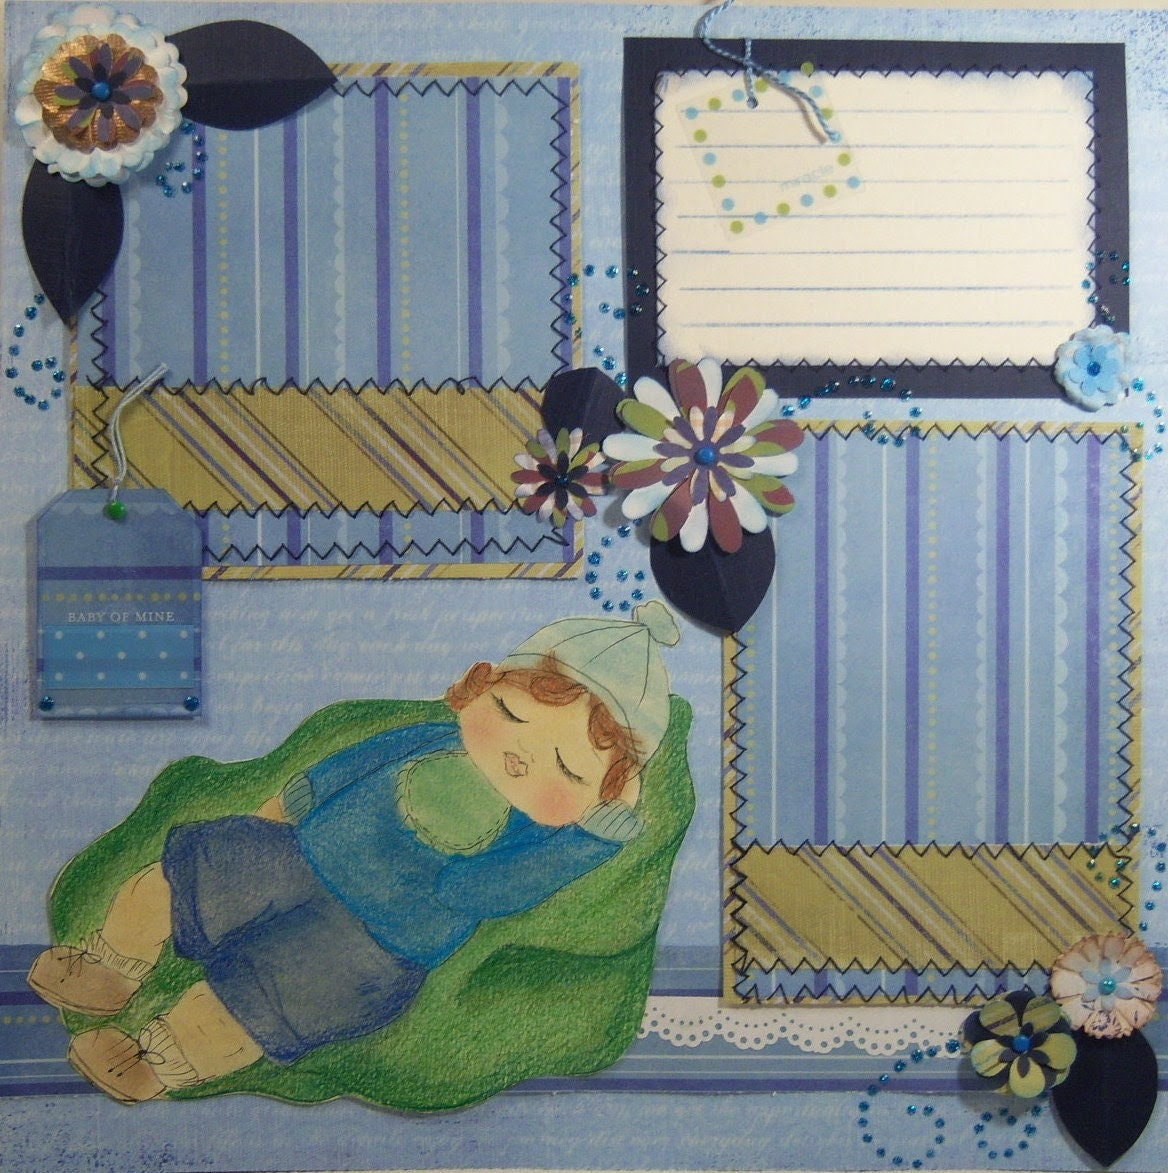 Bundle of Joy Miracle Baby Boy Premade Two Pages Layout for Scrapbook Album